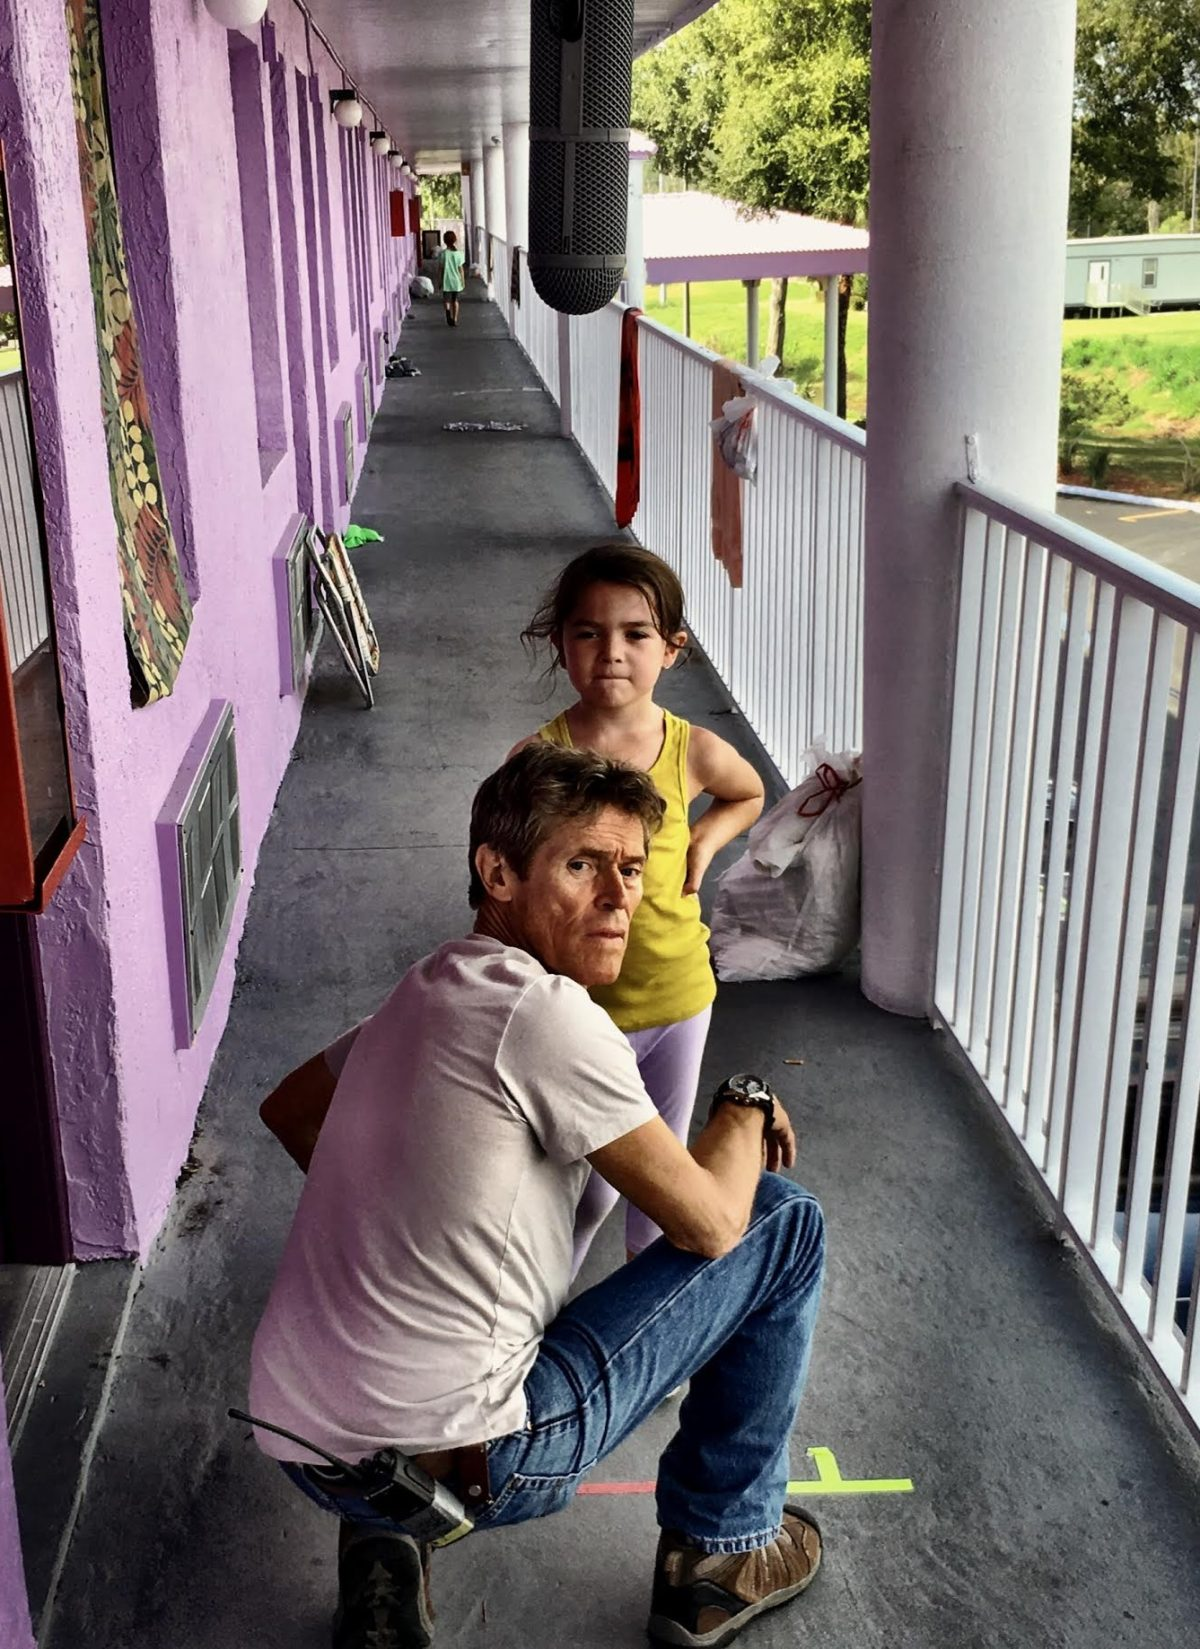 4- The Florida Project